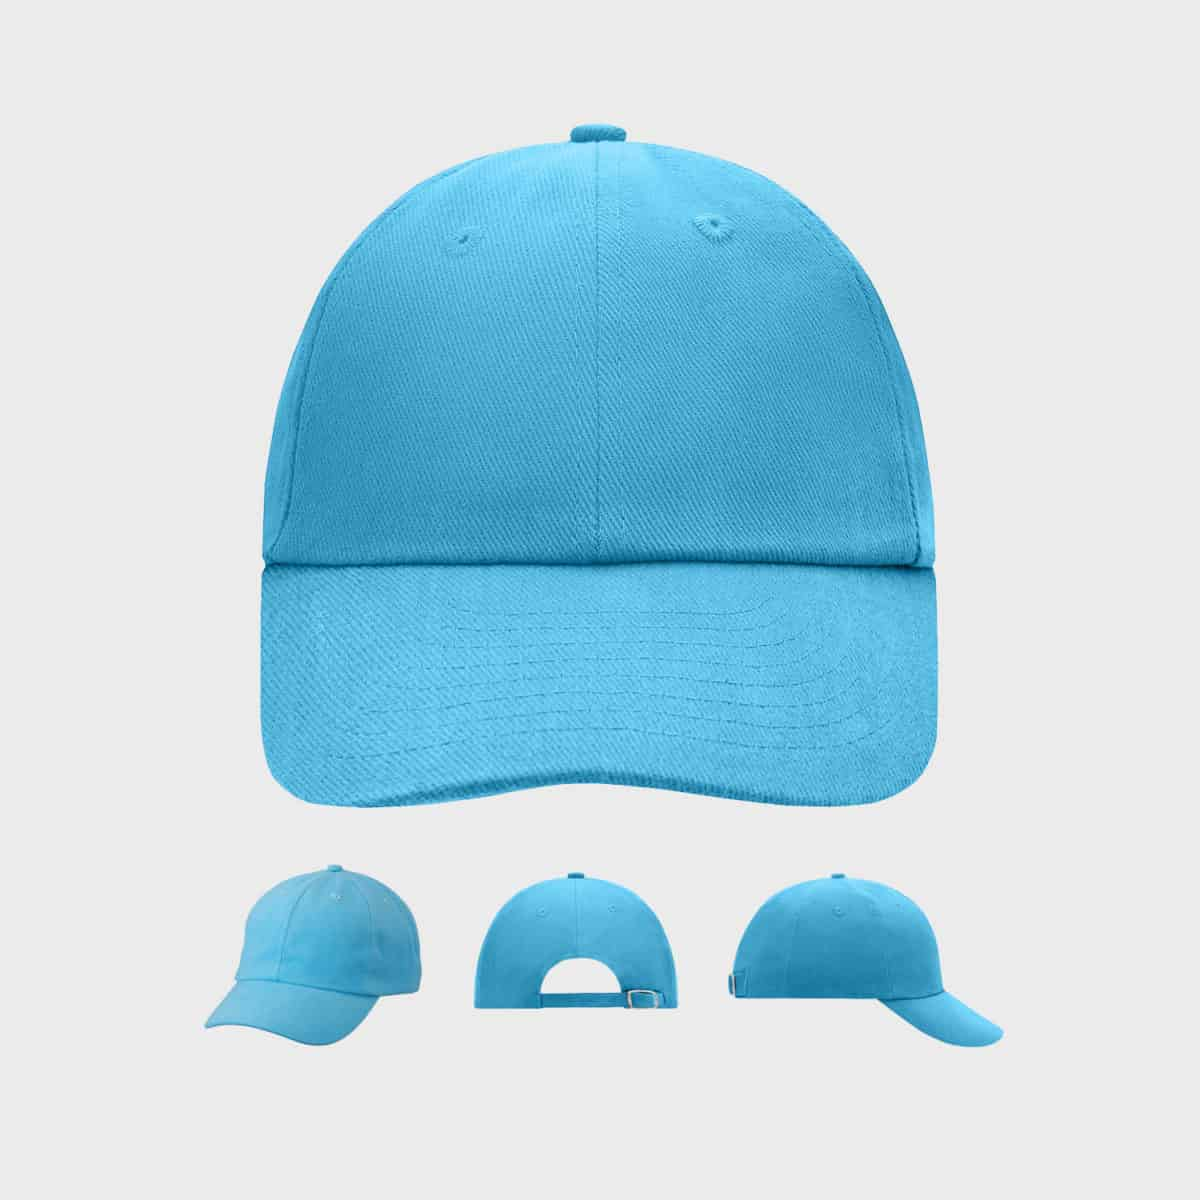 allround-6-panel-cap-unisex-skyblue-kaufen-besticken_stickmanufaktur